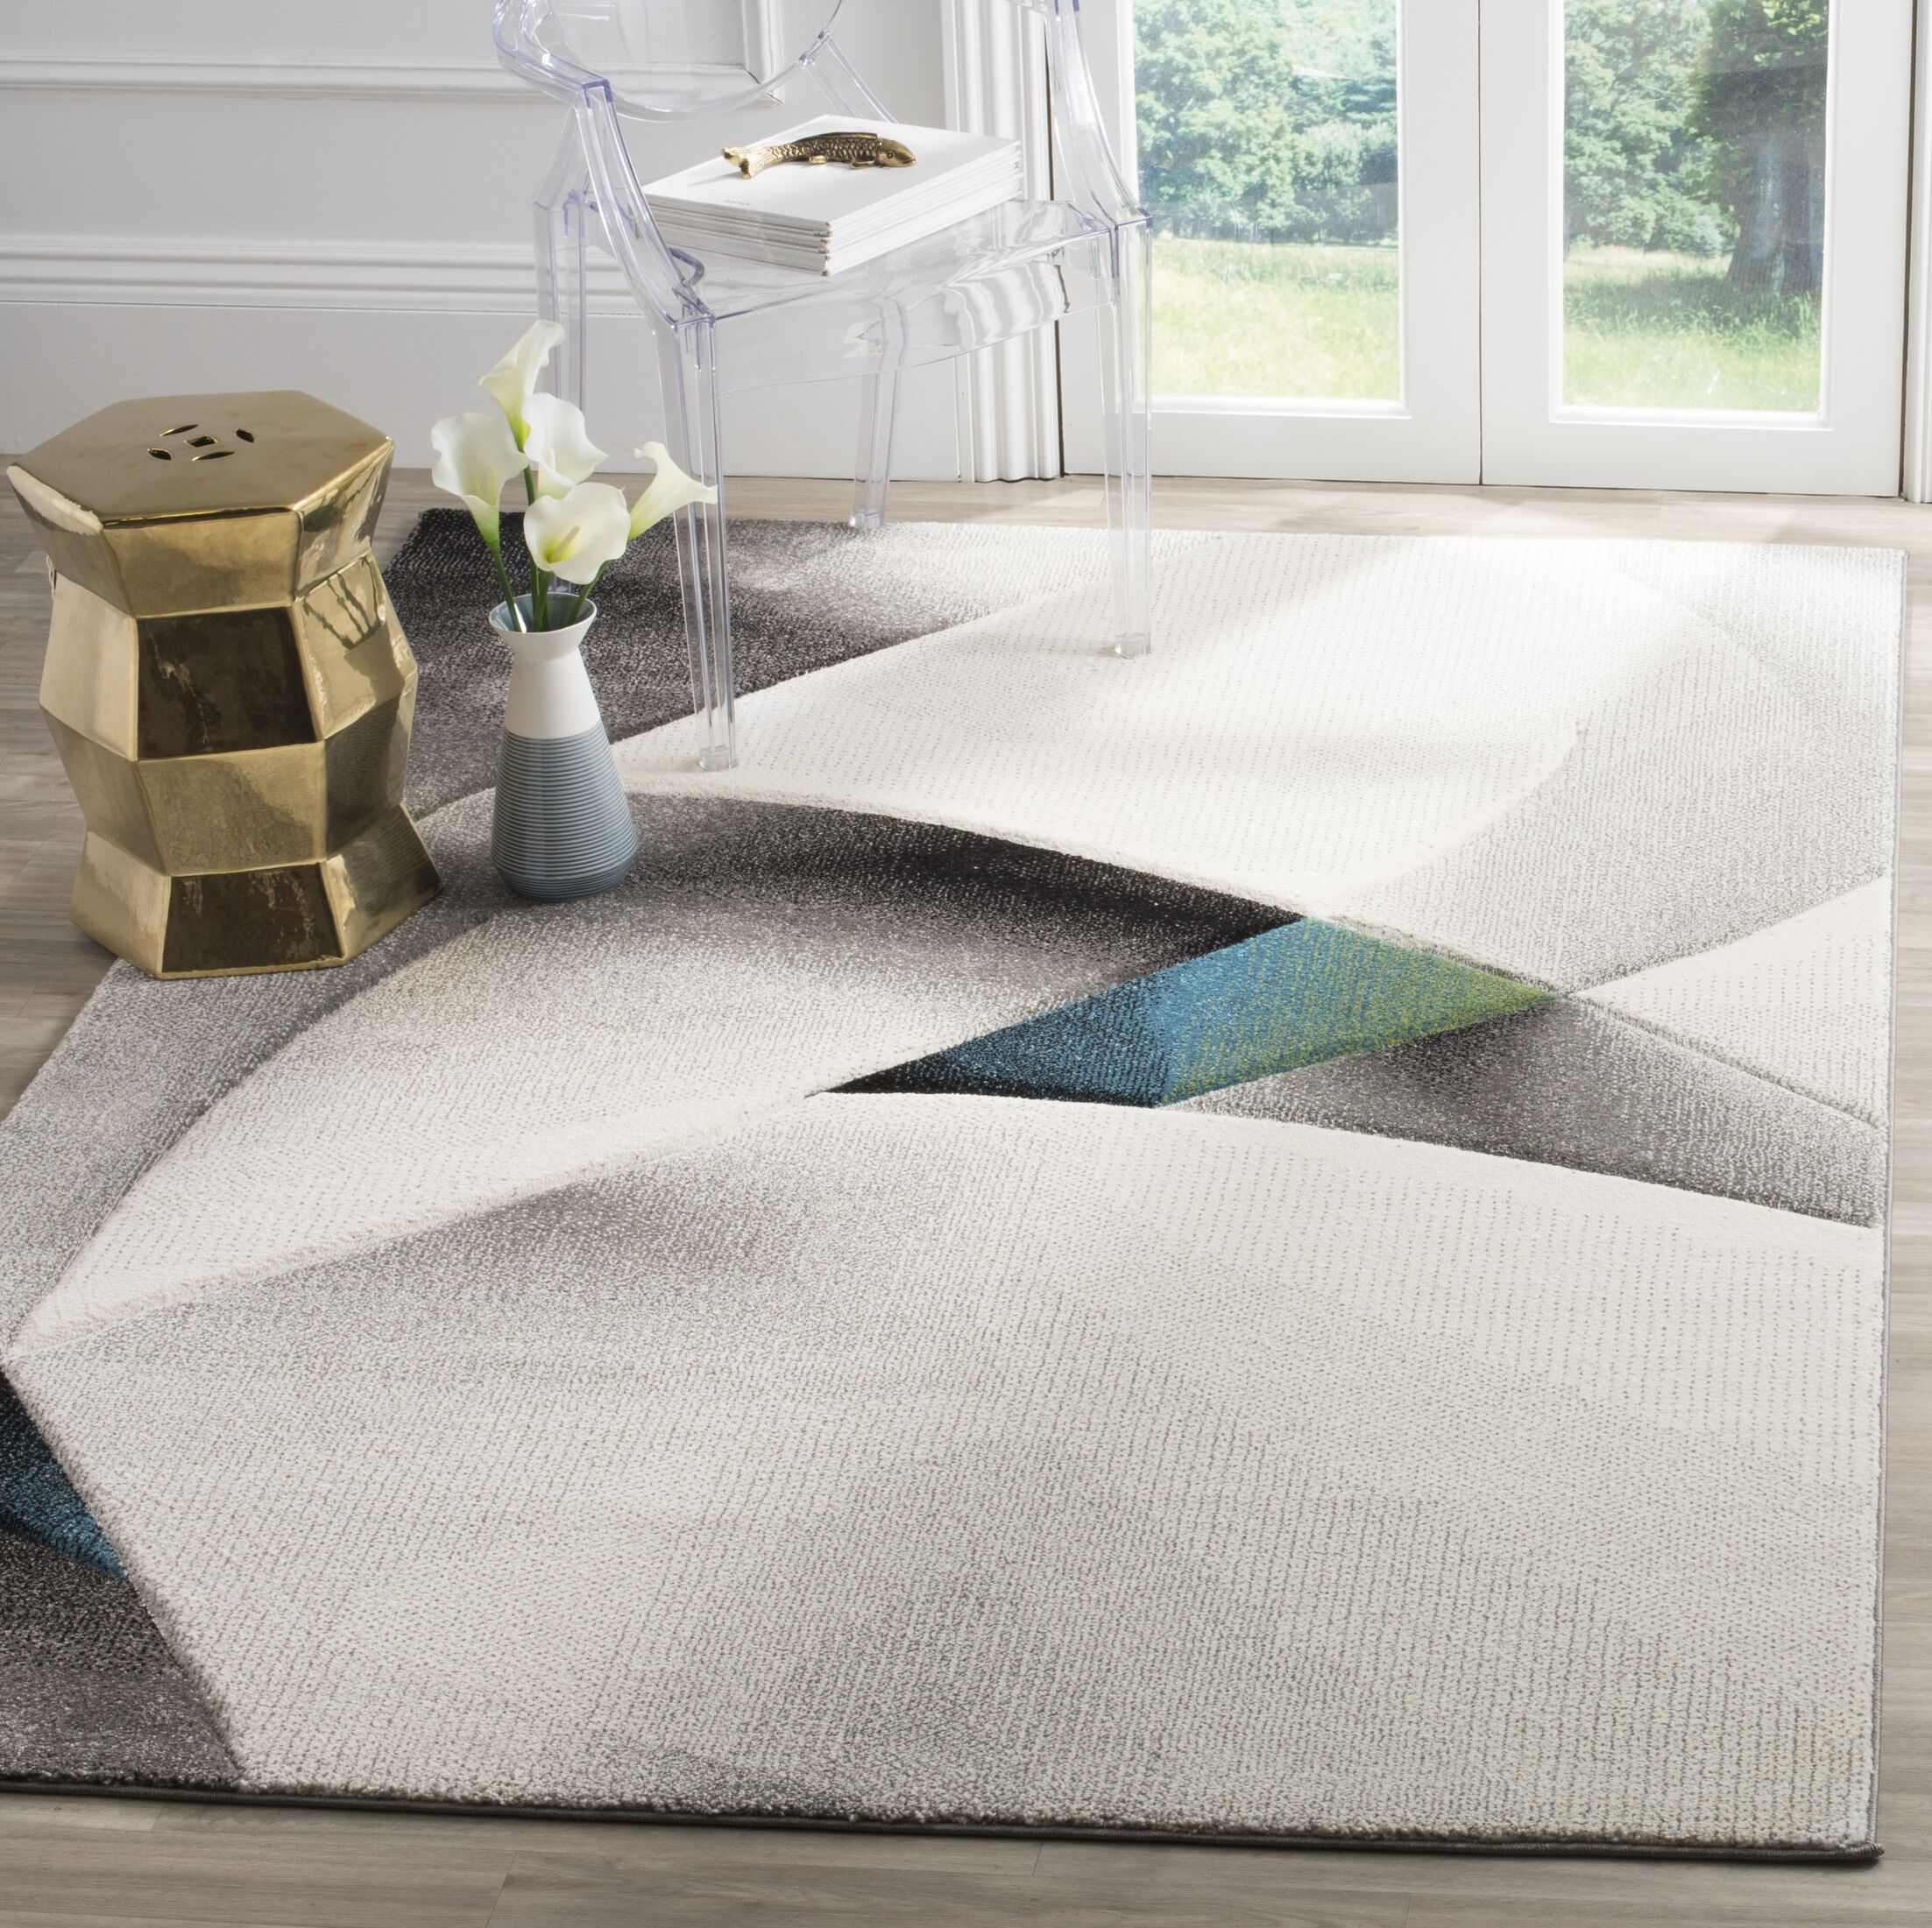 Anne Abstract Power Loomed Gray/Teal Area Rug Rug Size: Round 5'3